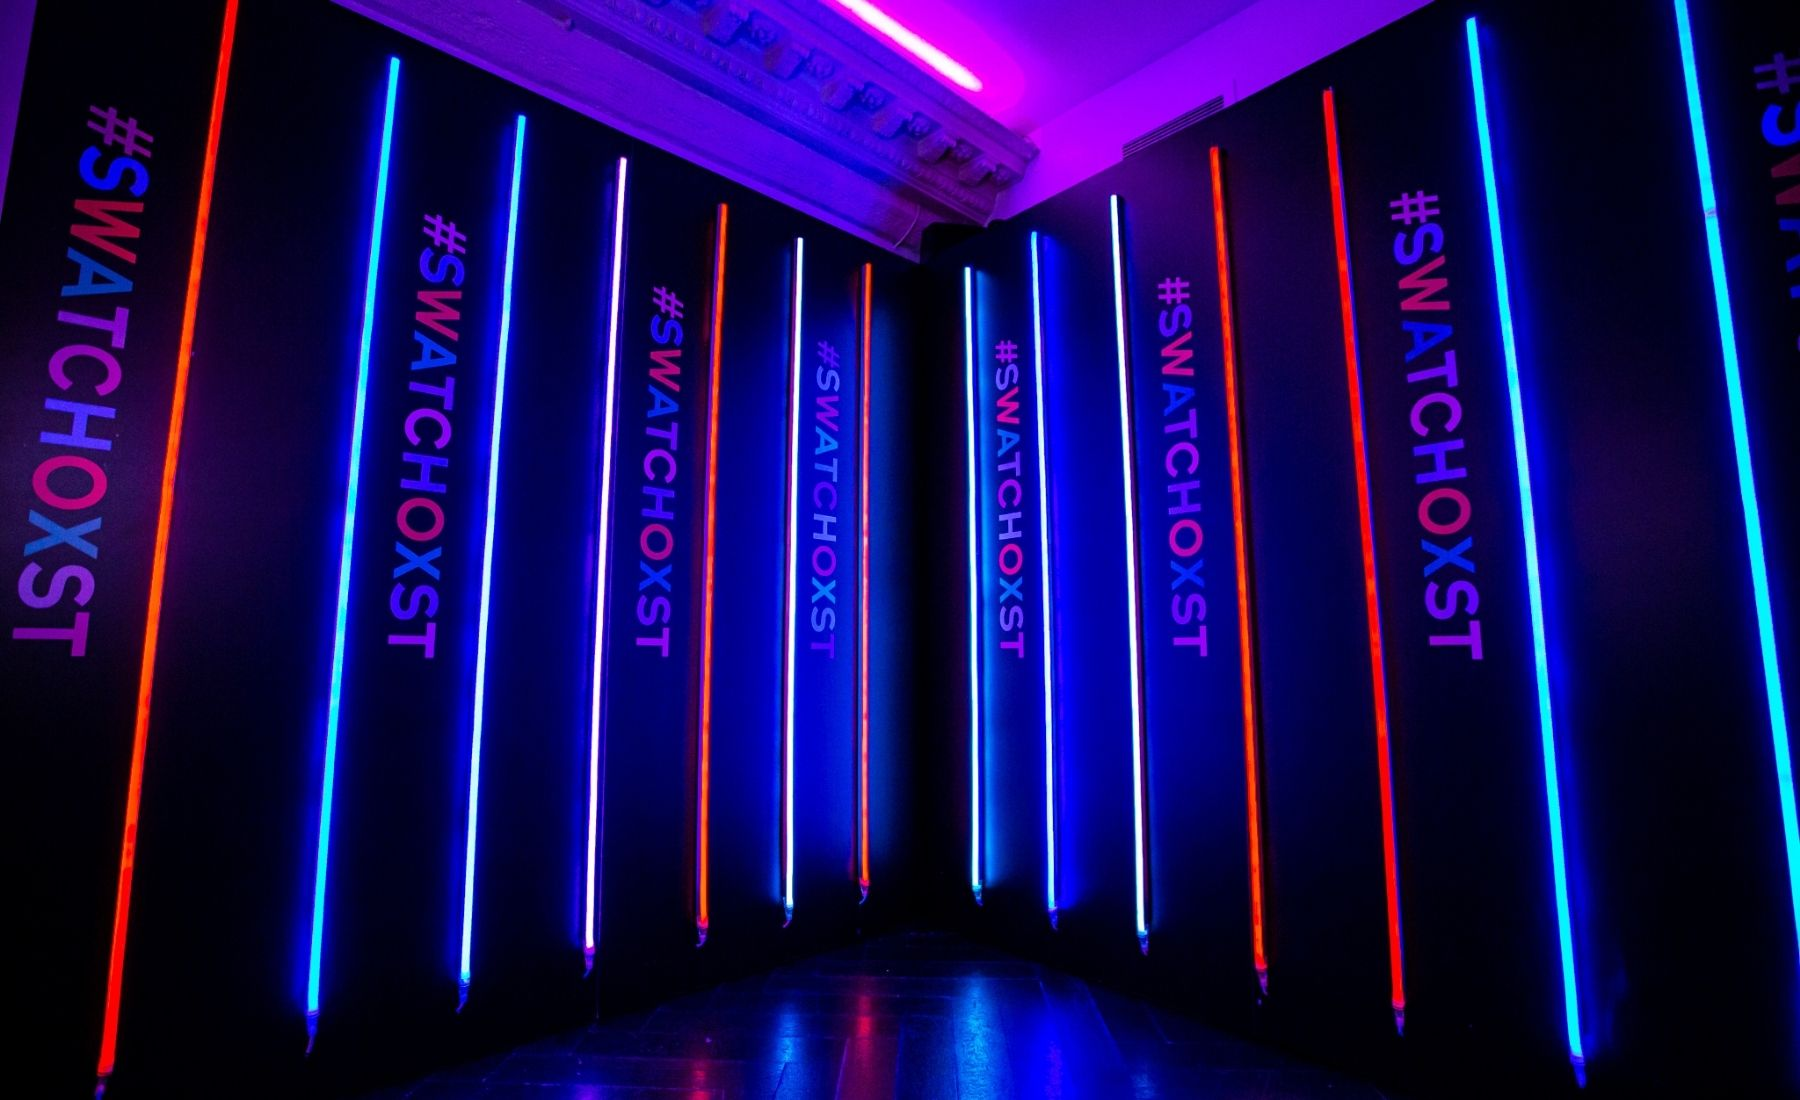 Swatch store re-opening, neons